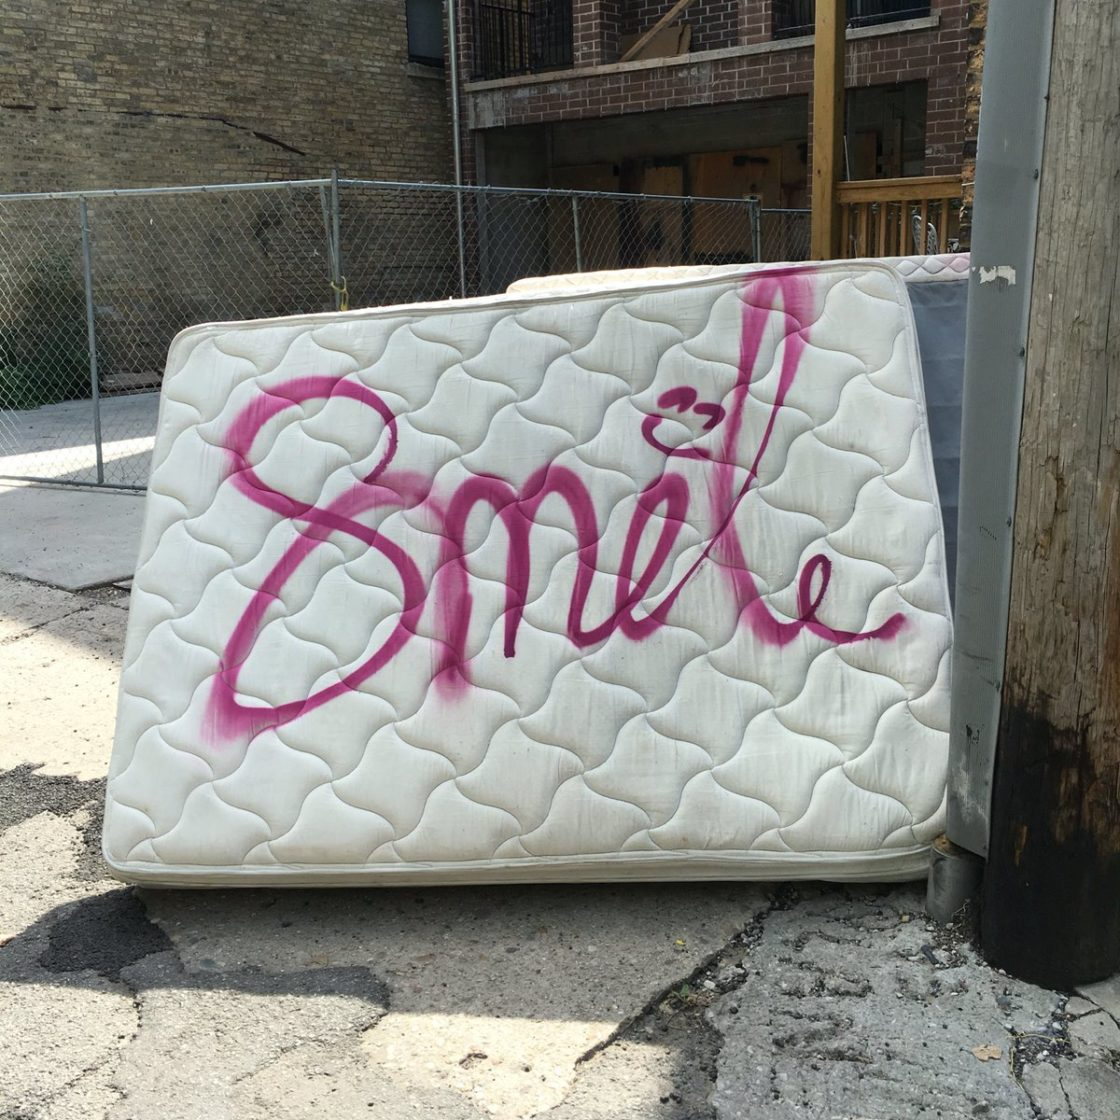 OHIO: Youngstown is the Abandoned Mattress Capitol